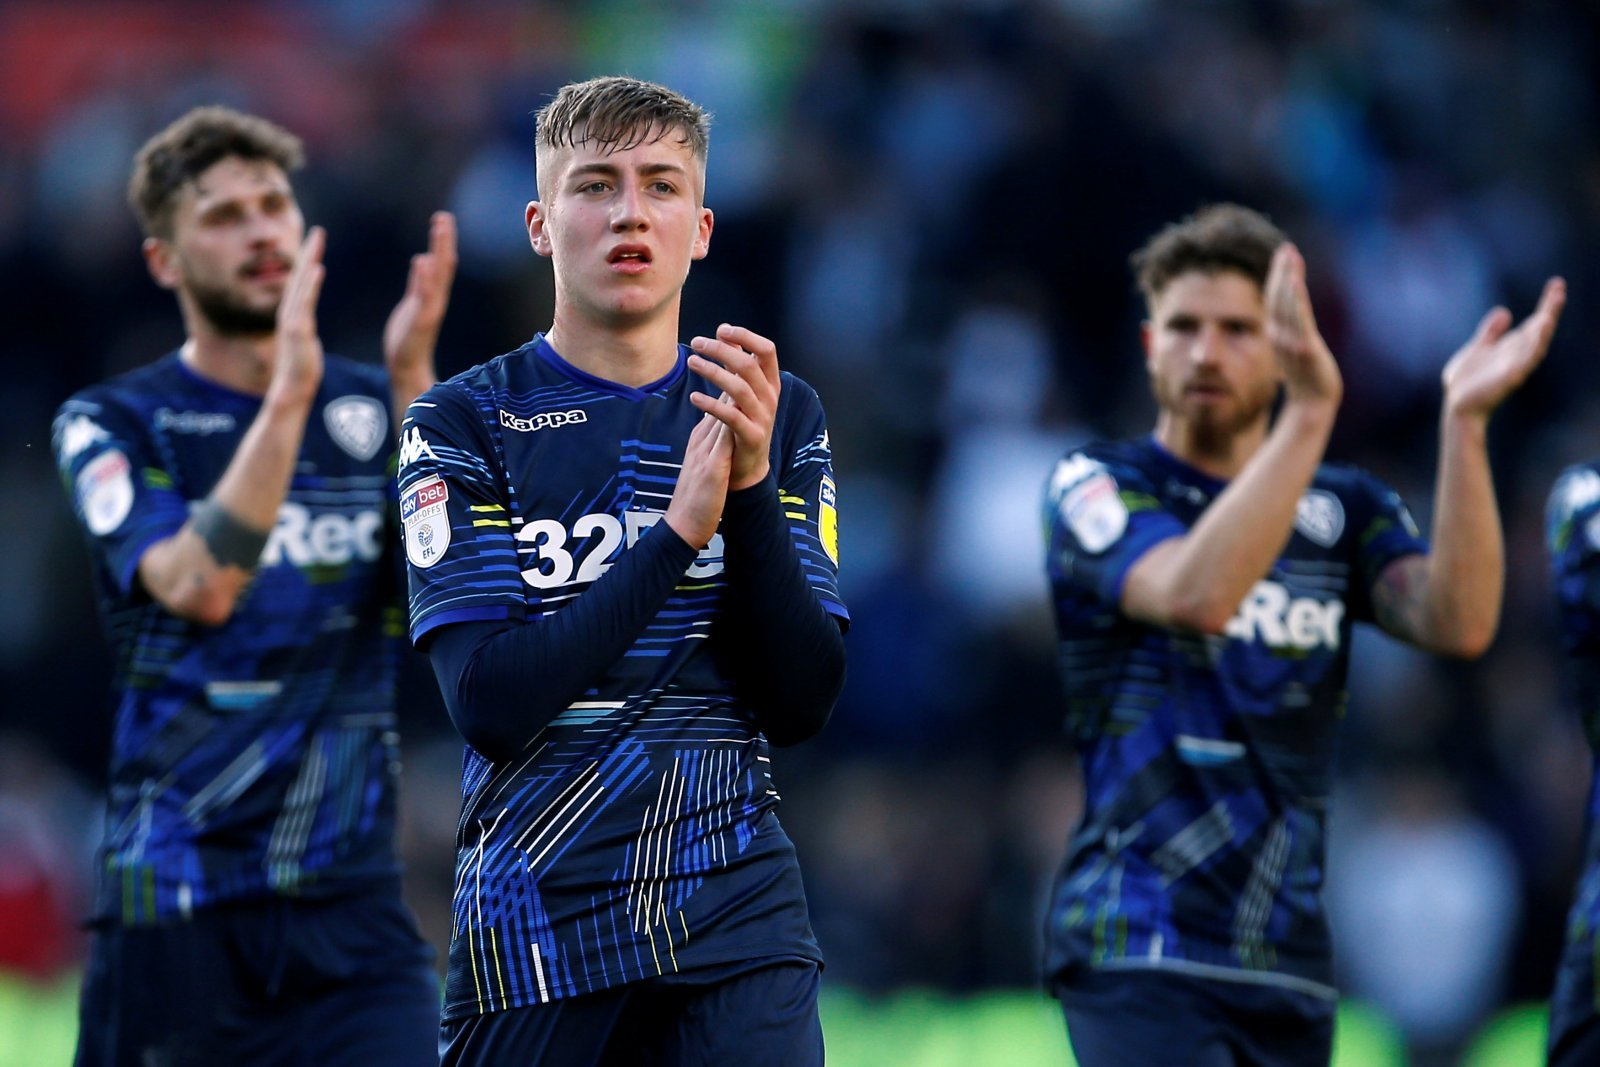 Leeds United: Fans would be happy to see Jack Clarke leave in January